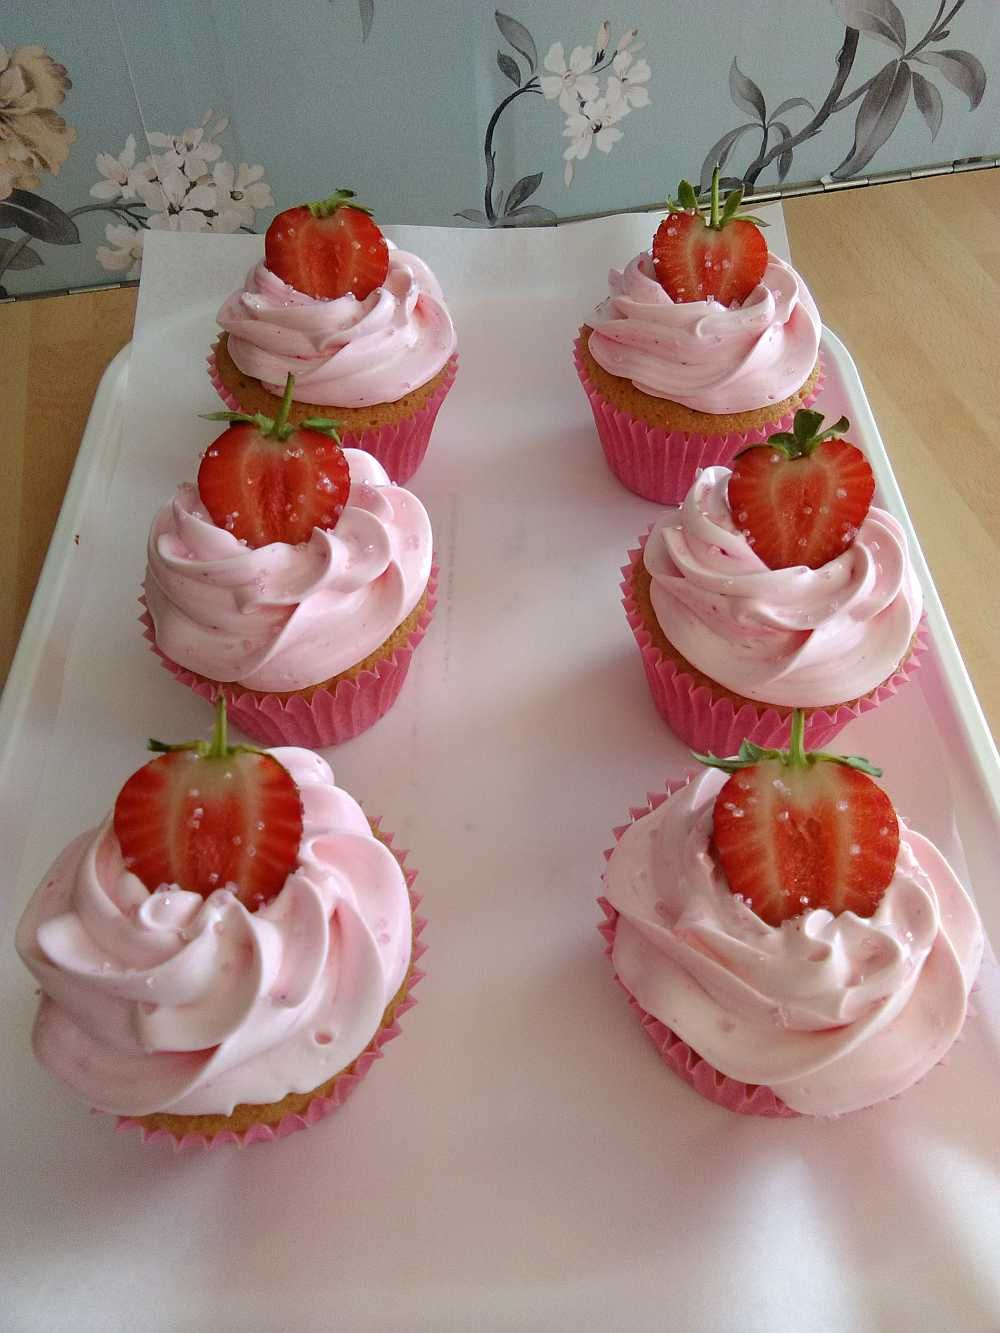 Fresh strawberry cup cakes, delicious to look at and even